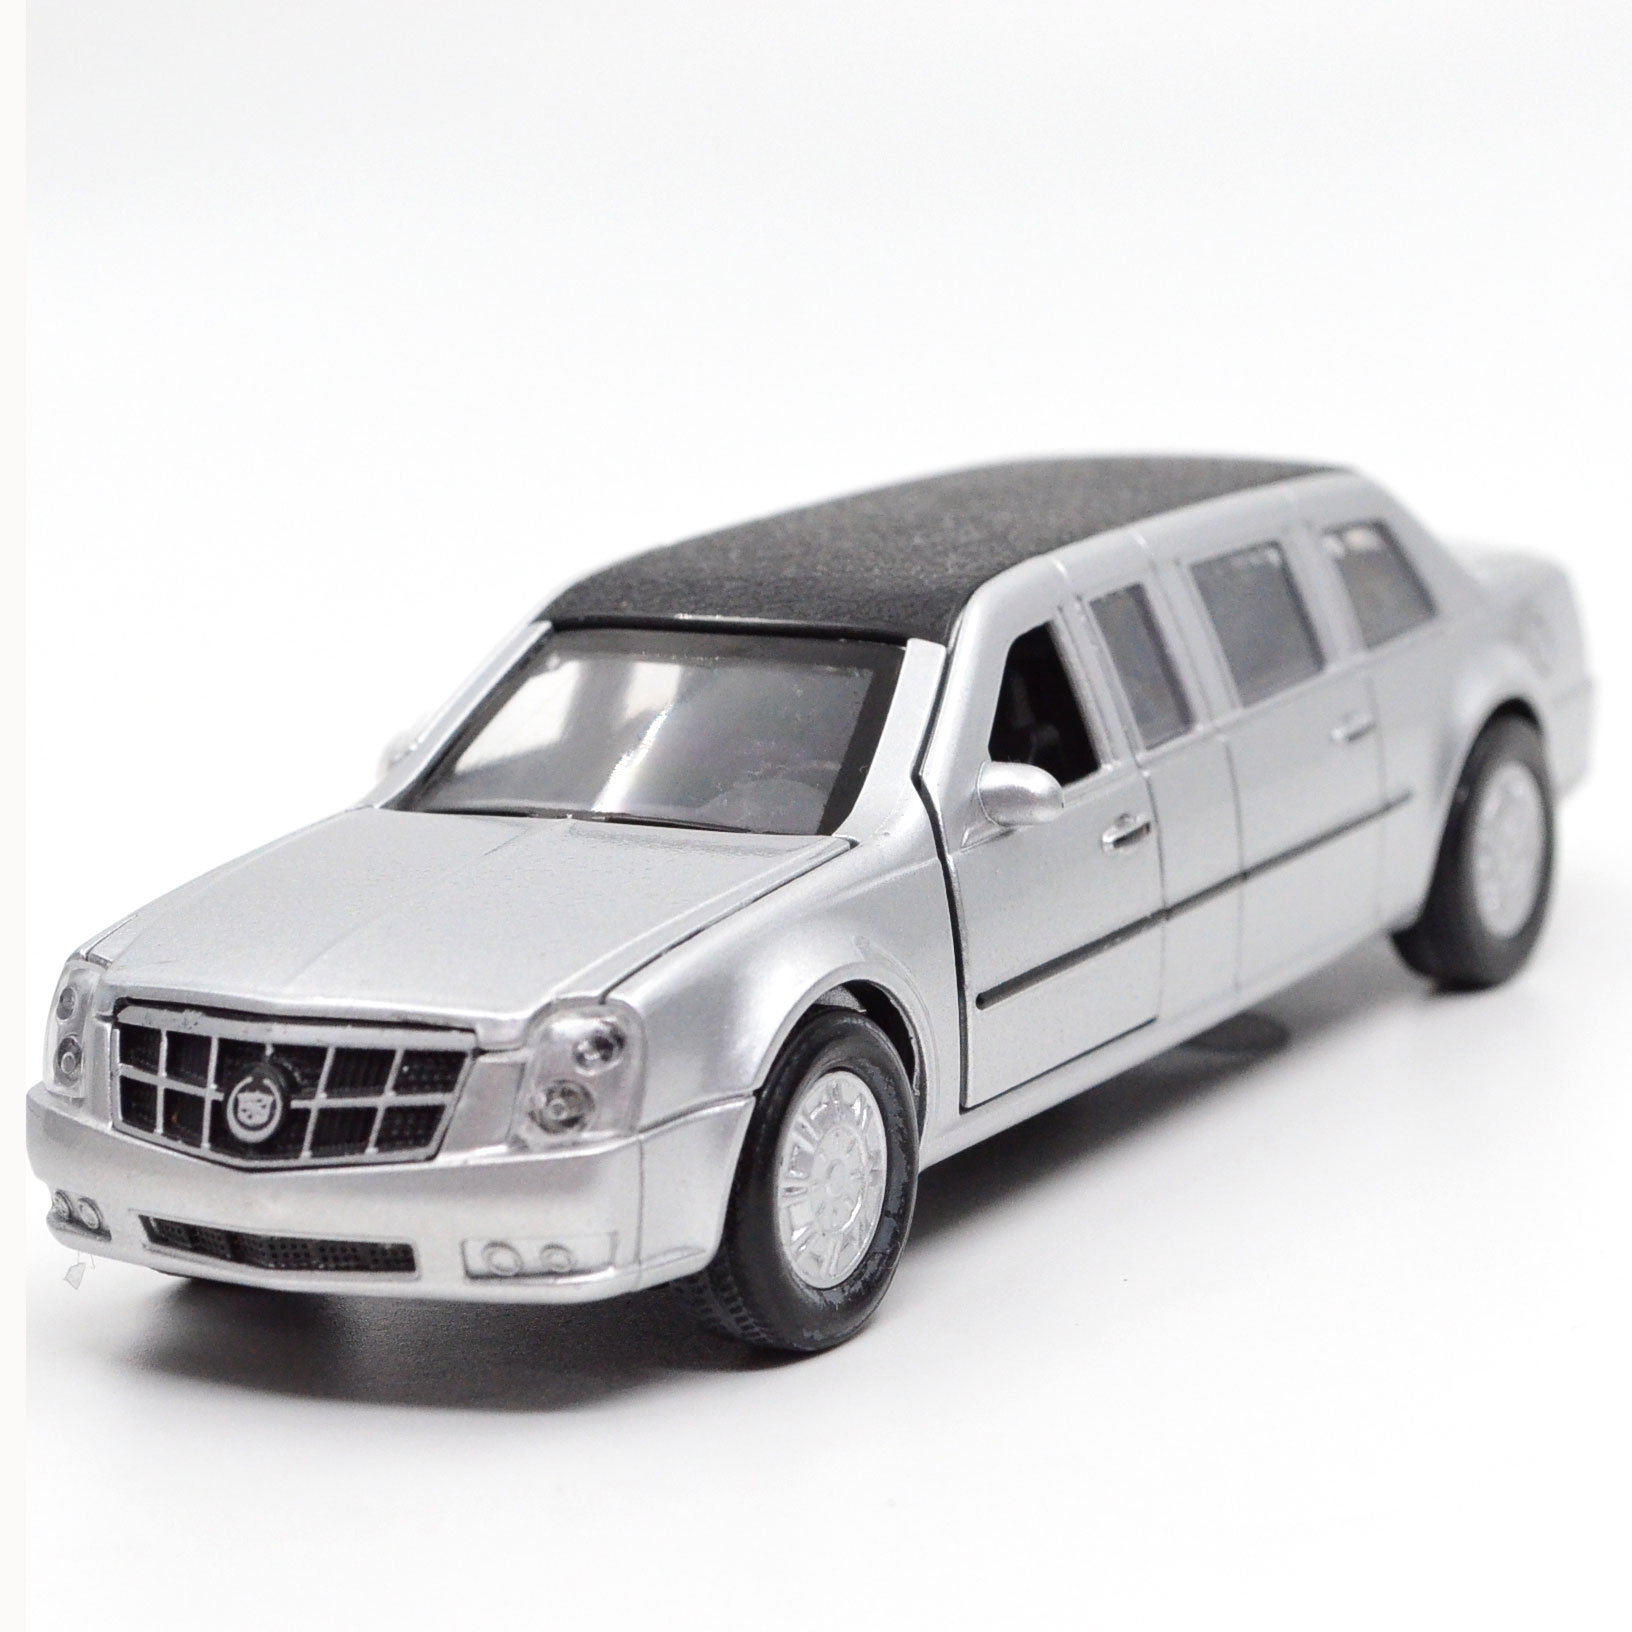 Extended Models 1:32 Alloy Model Limo Car Children's Limousine Diecast Vehicle Toys(China (Mainland))